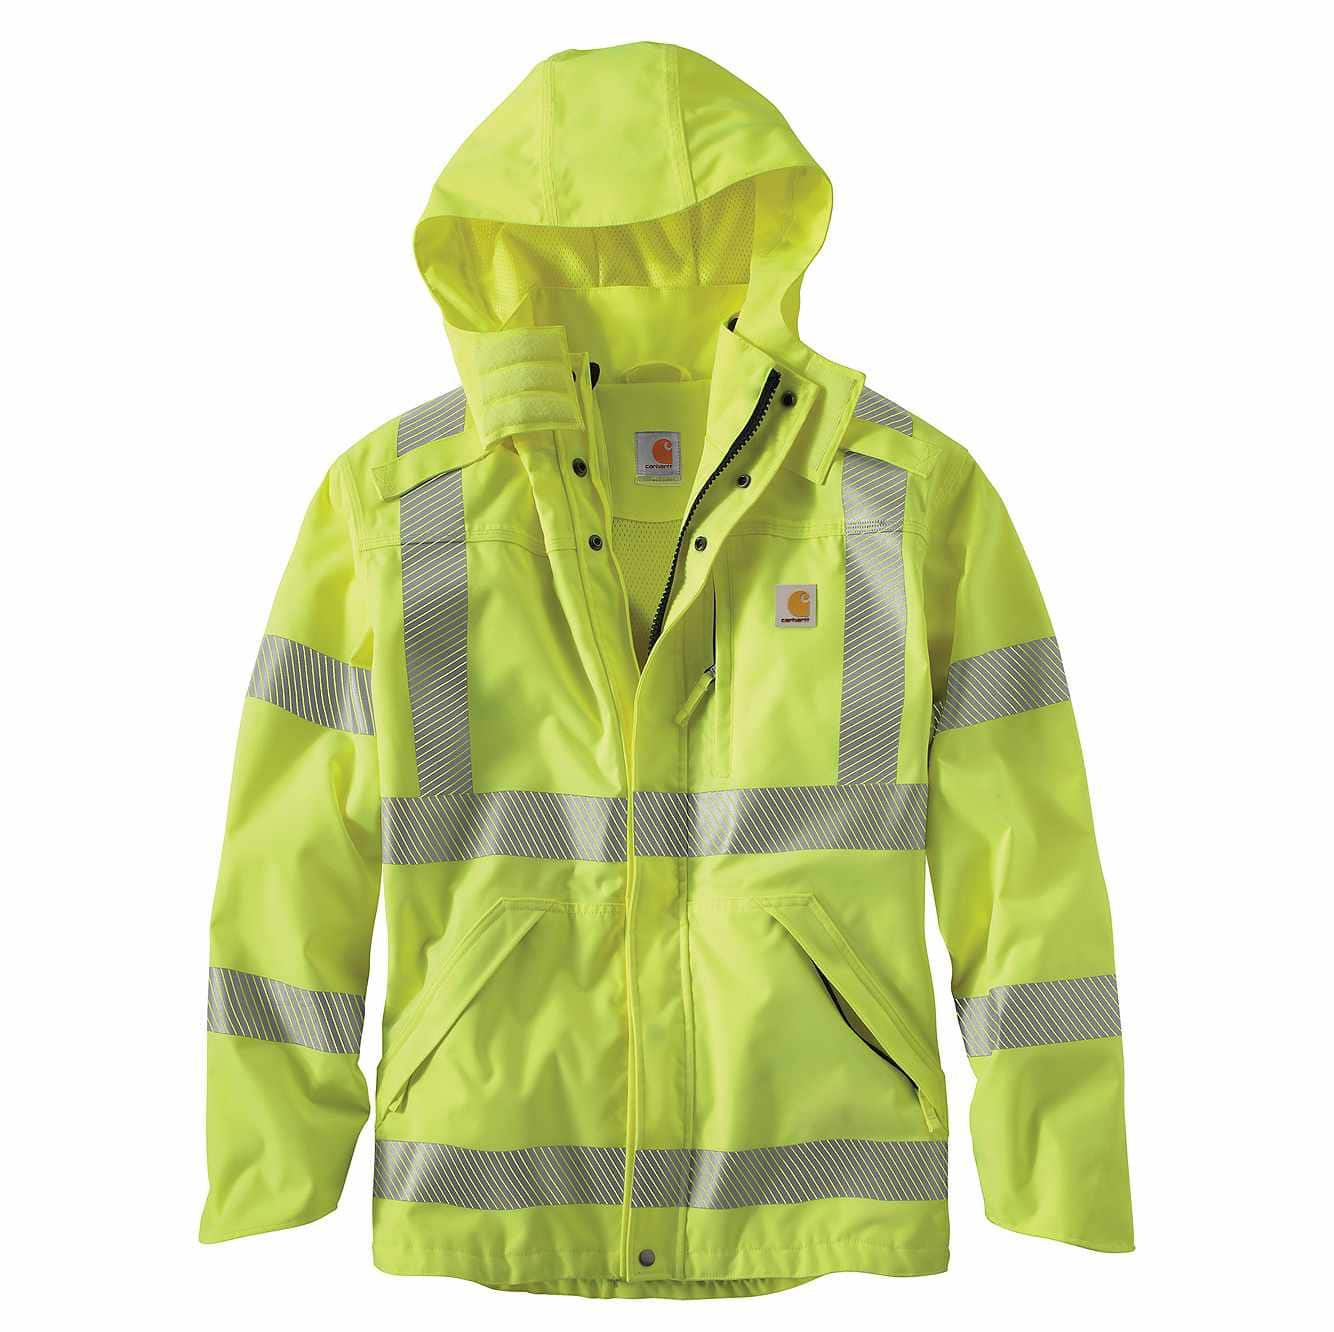 Picture of High-Visibility Class 3 Waterproof Jacket in Brite Lime